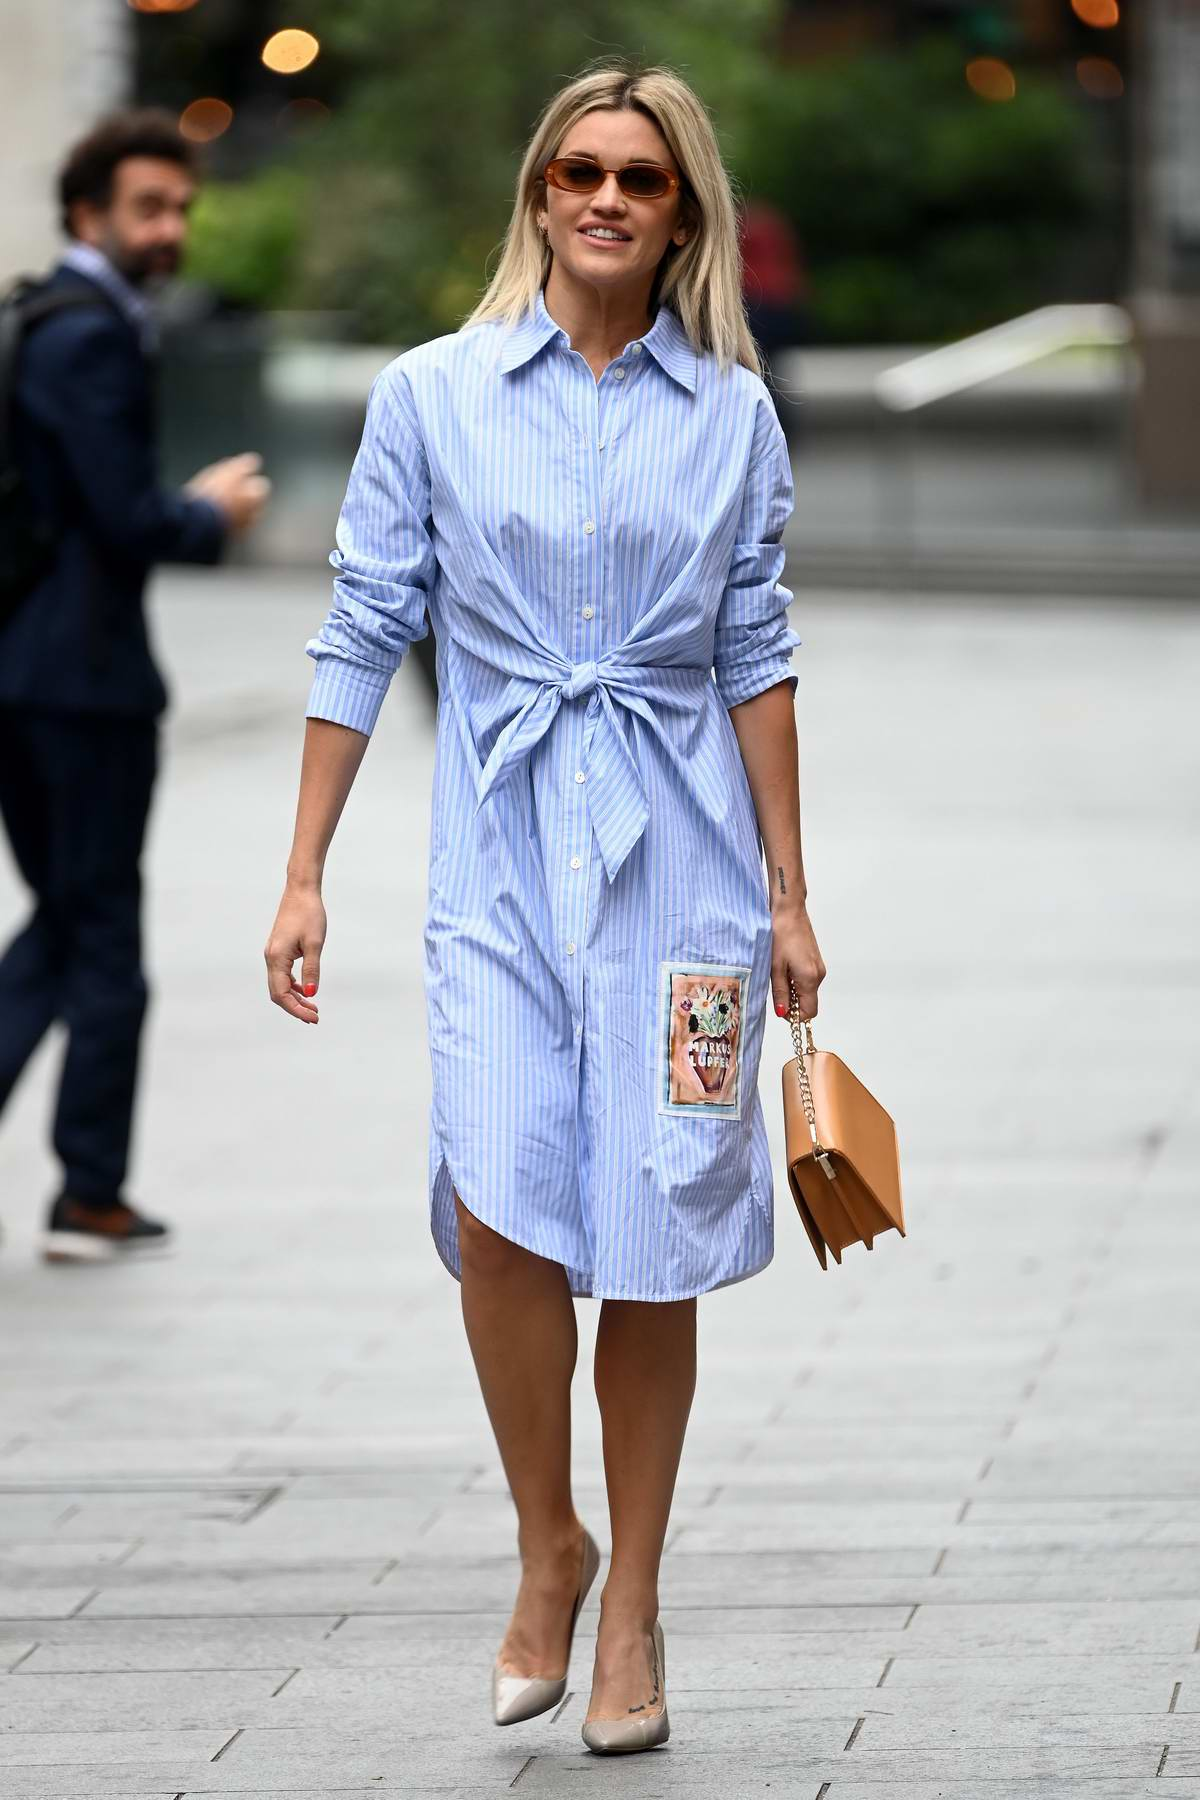 Ashley Roberts wears a blue striped shirt dress as she leaves at Global Radio studios in London, UK